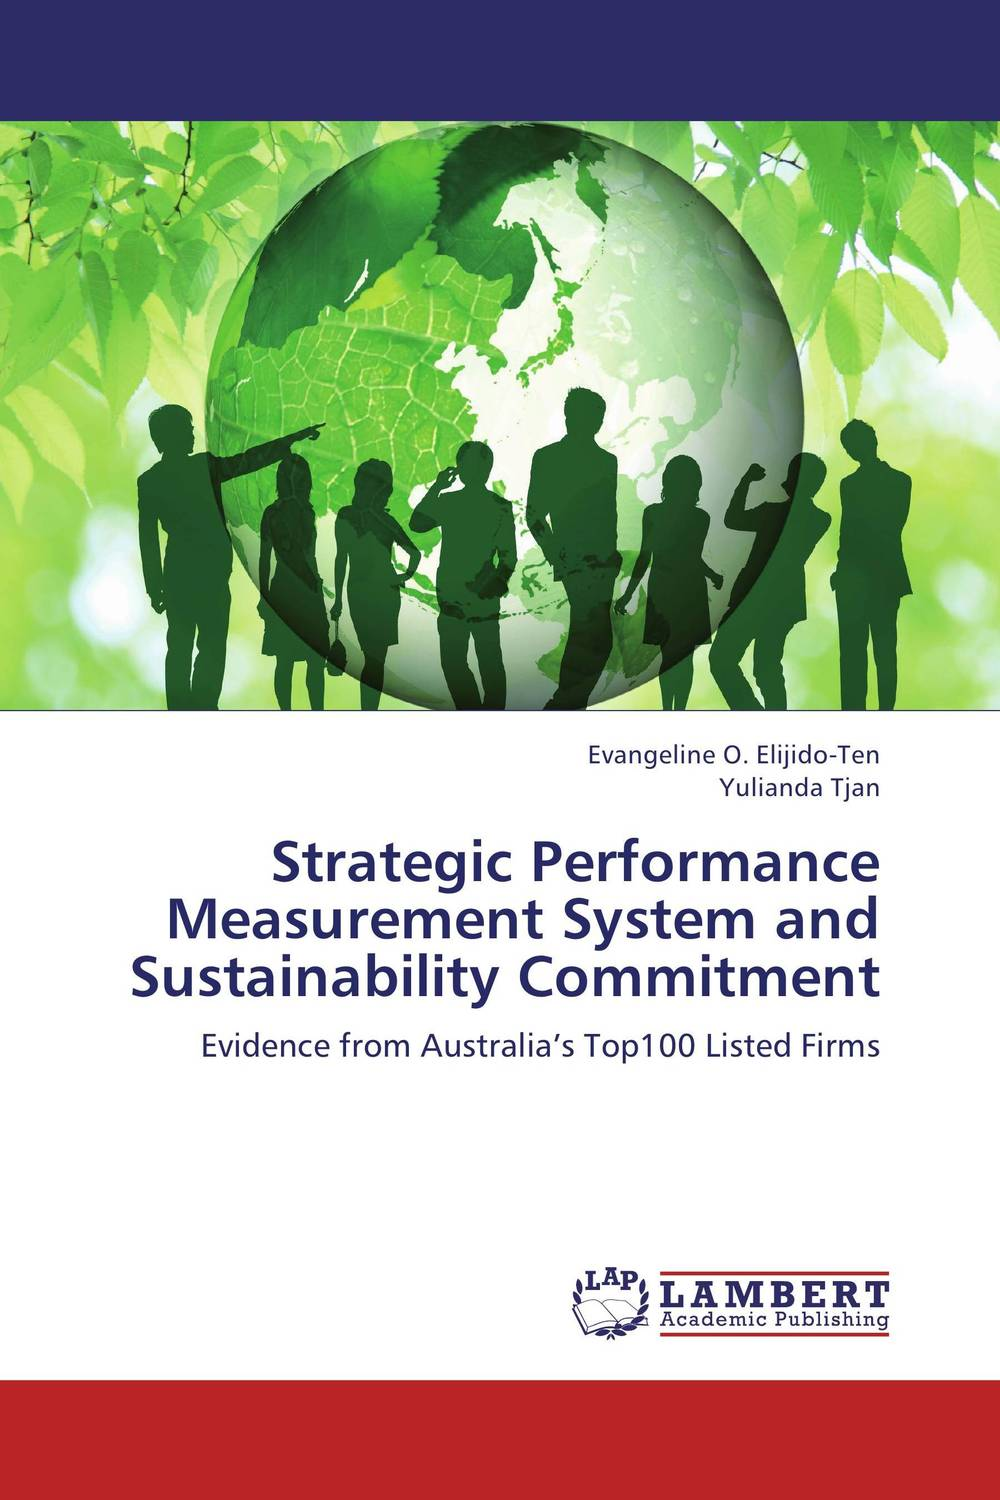 Strategic Performance Measurement System and Sustainability Commitment